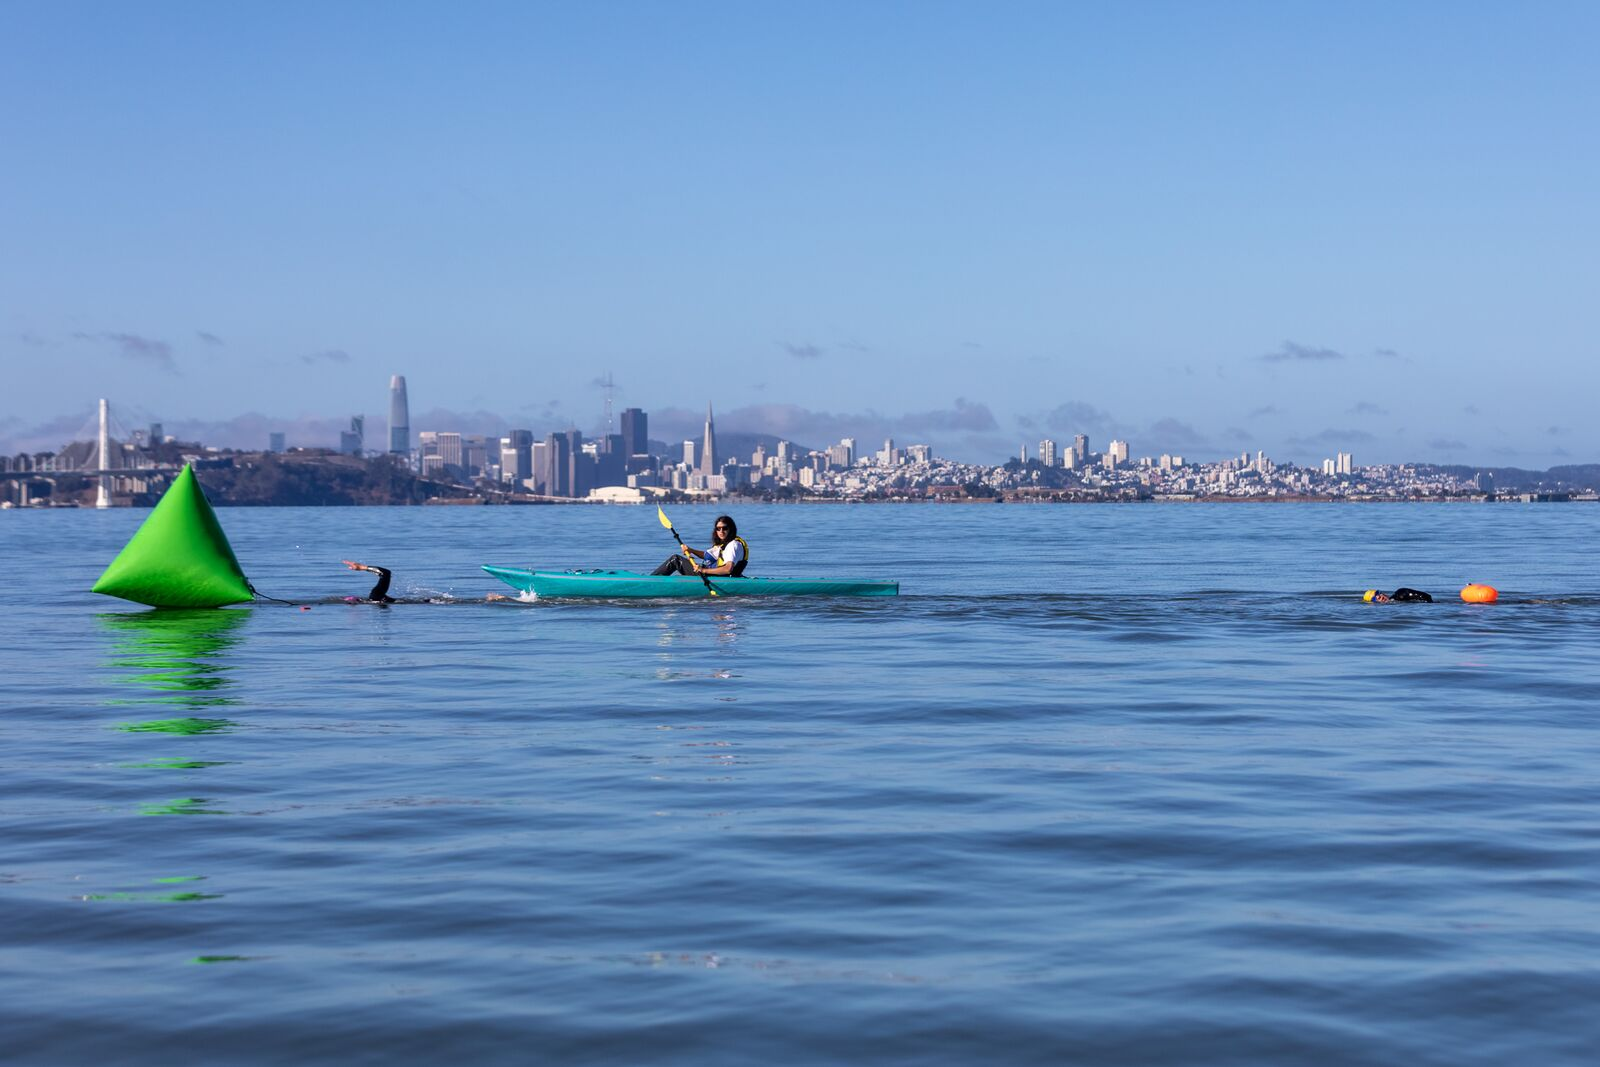 Odyssey open water swimmers navigate to a green buoy in the South Sailing Basin at the Berkeley Marina on September 19, 2021. Credit: Kelly Sullivan